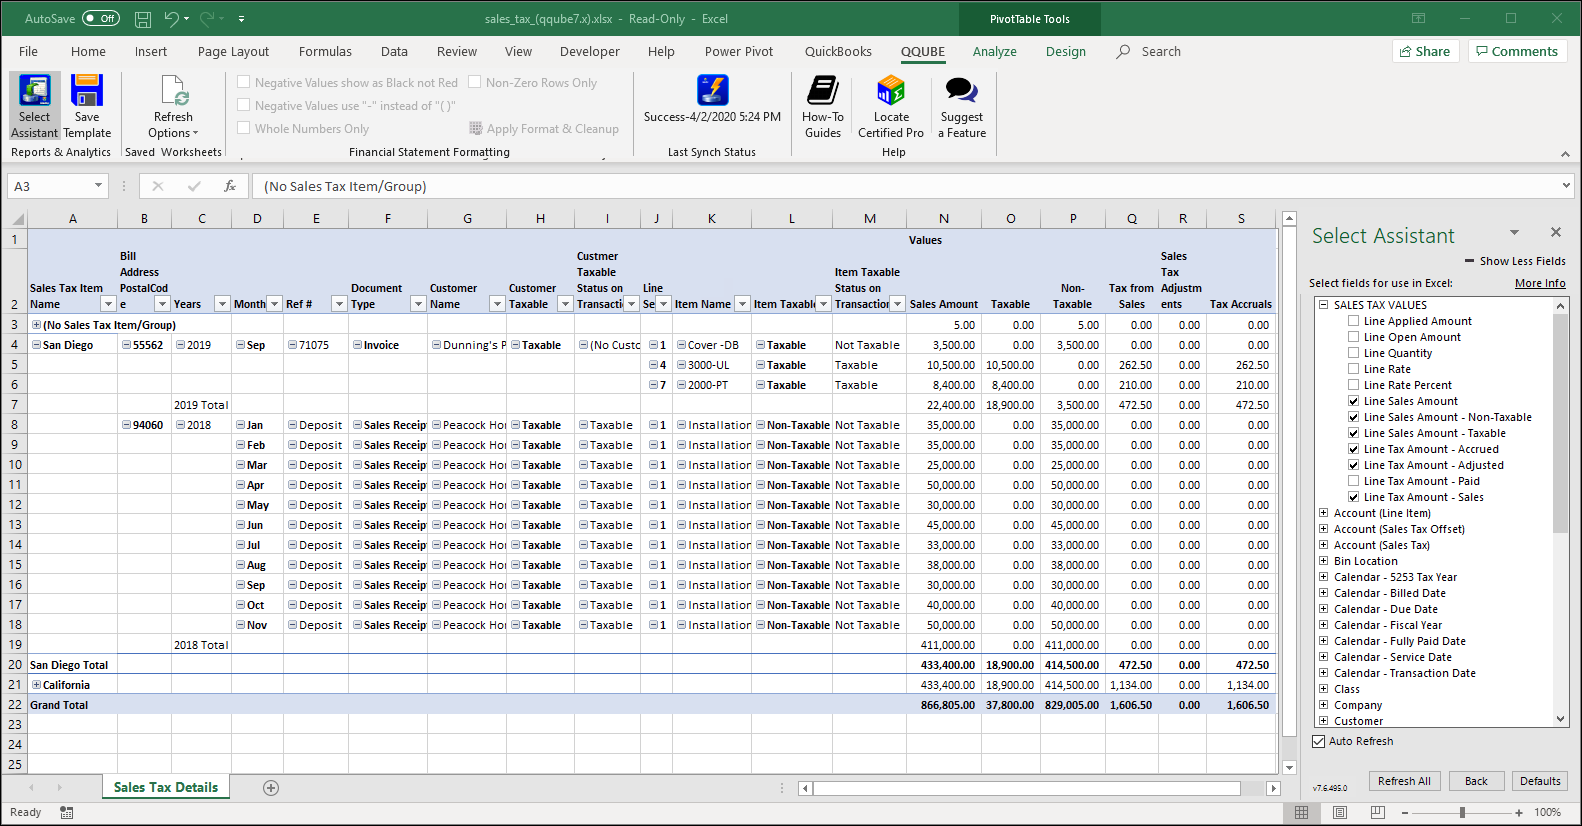 QuickBooks Sales Tax Details using QQube with Excel